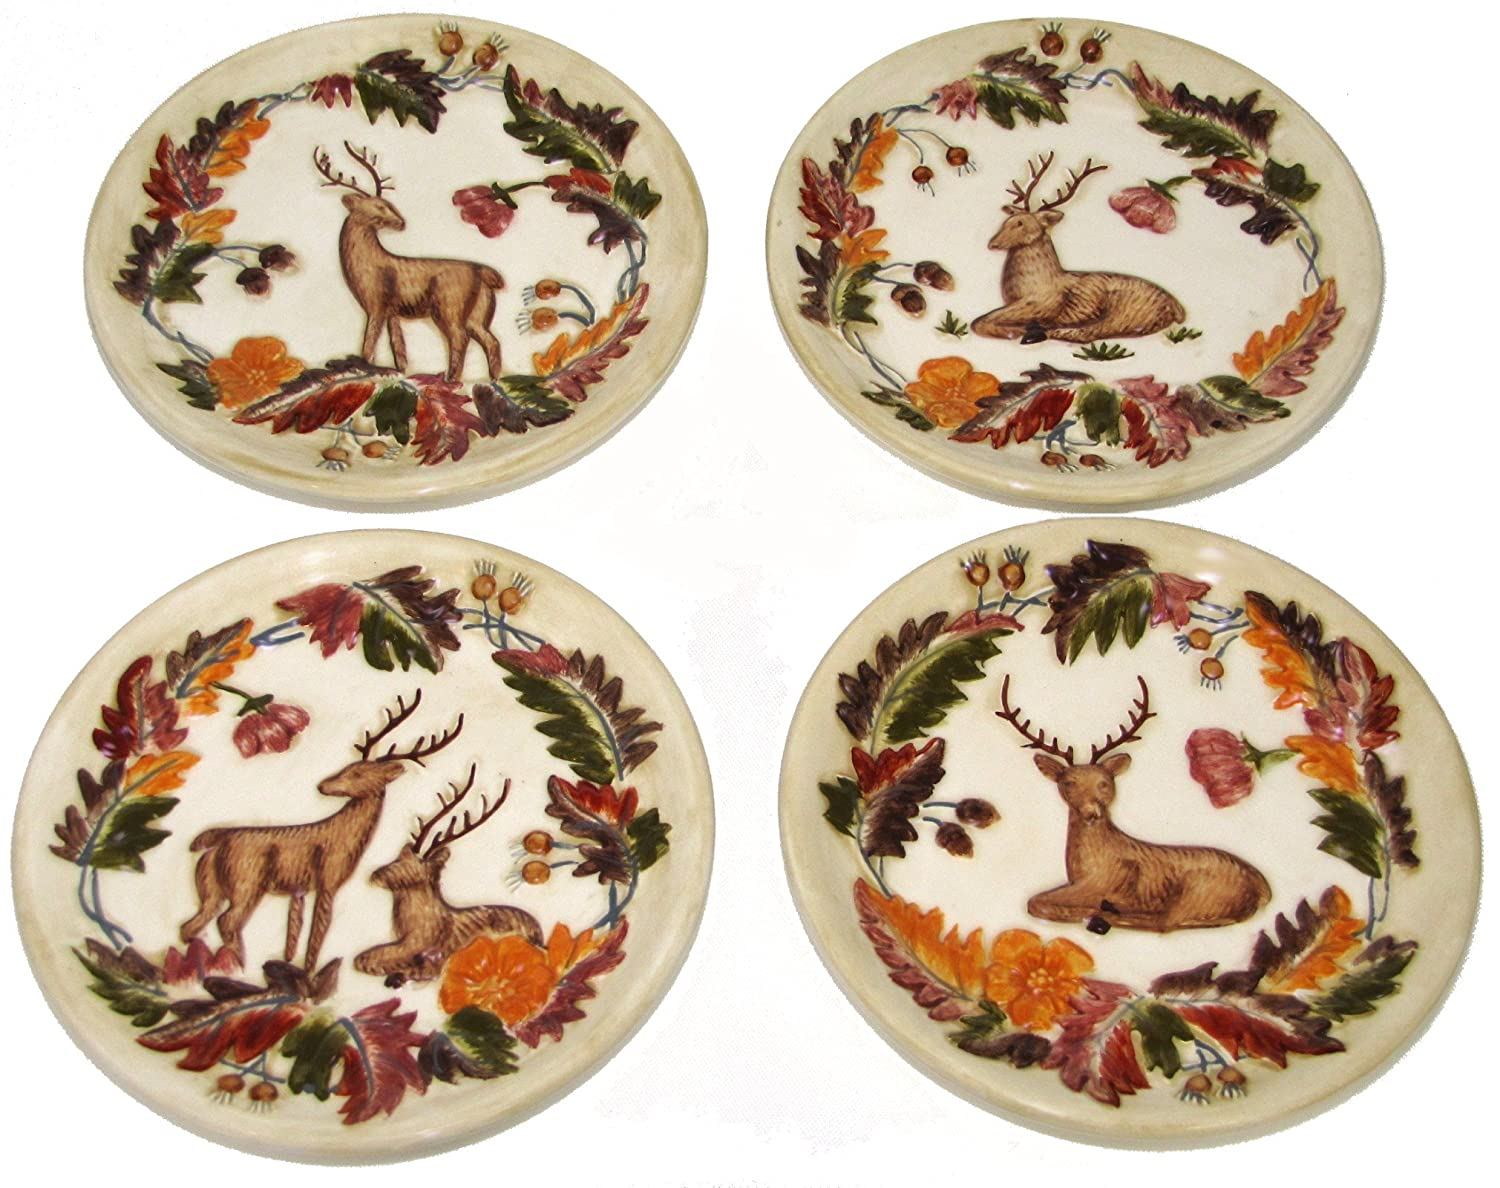 Amazon.com Manual Grand Lodge Wildlife Autumn Deer Buck Doe Mini Plates - Set of 4 Home u0026 Kitchen  sc 1 st  Amazon.com & Amazon.com: Manual Grand Lodge Wildlife Autumn Deer Buck Doe Mini ...